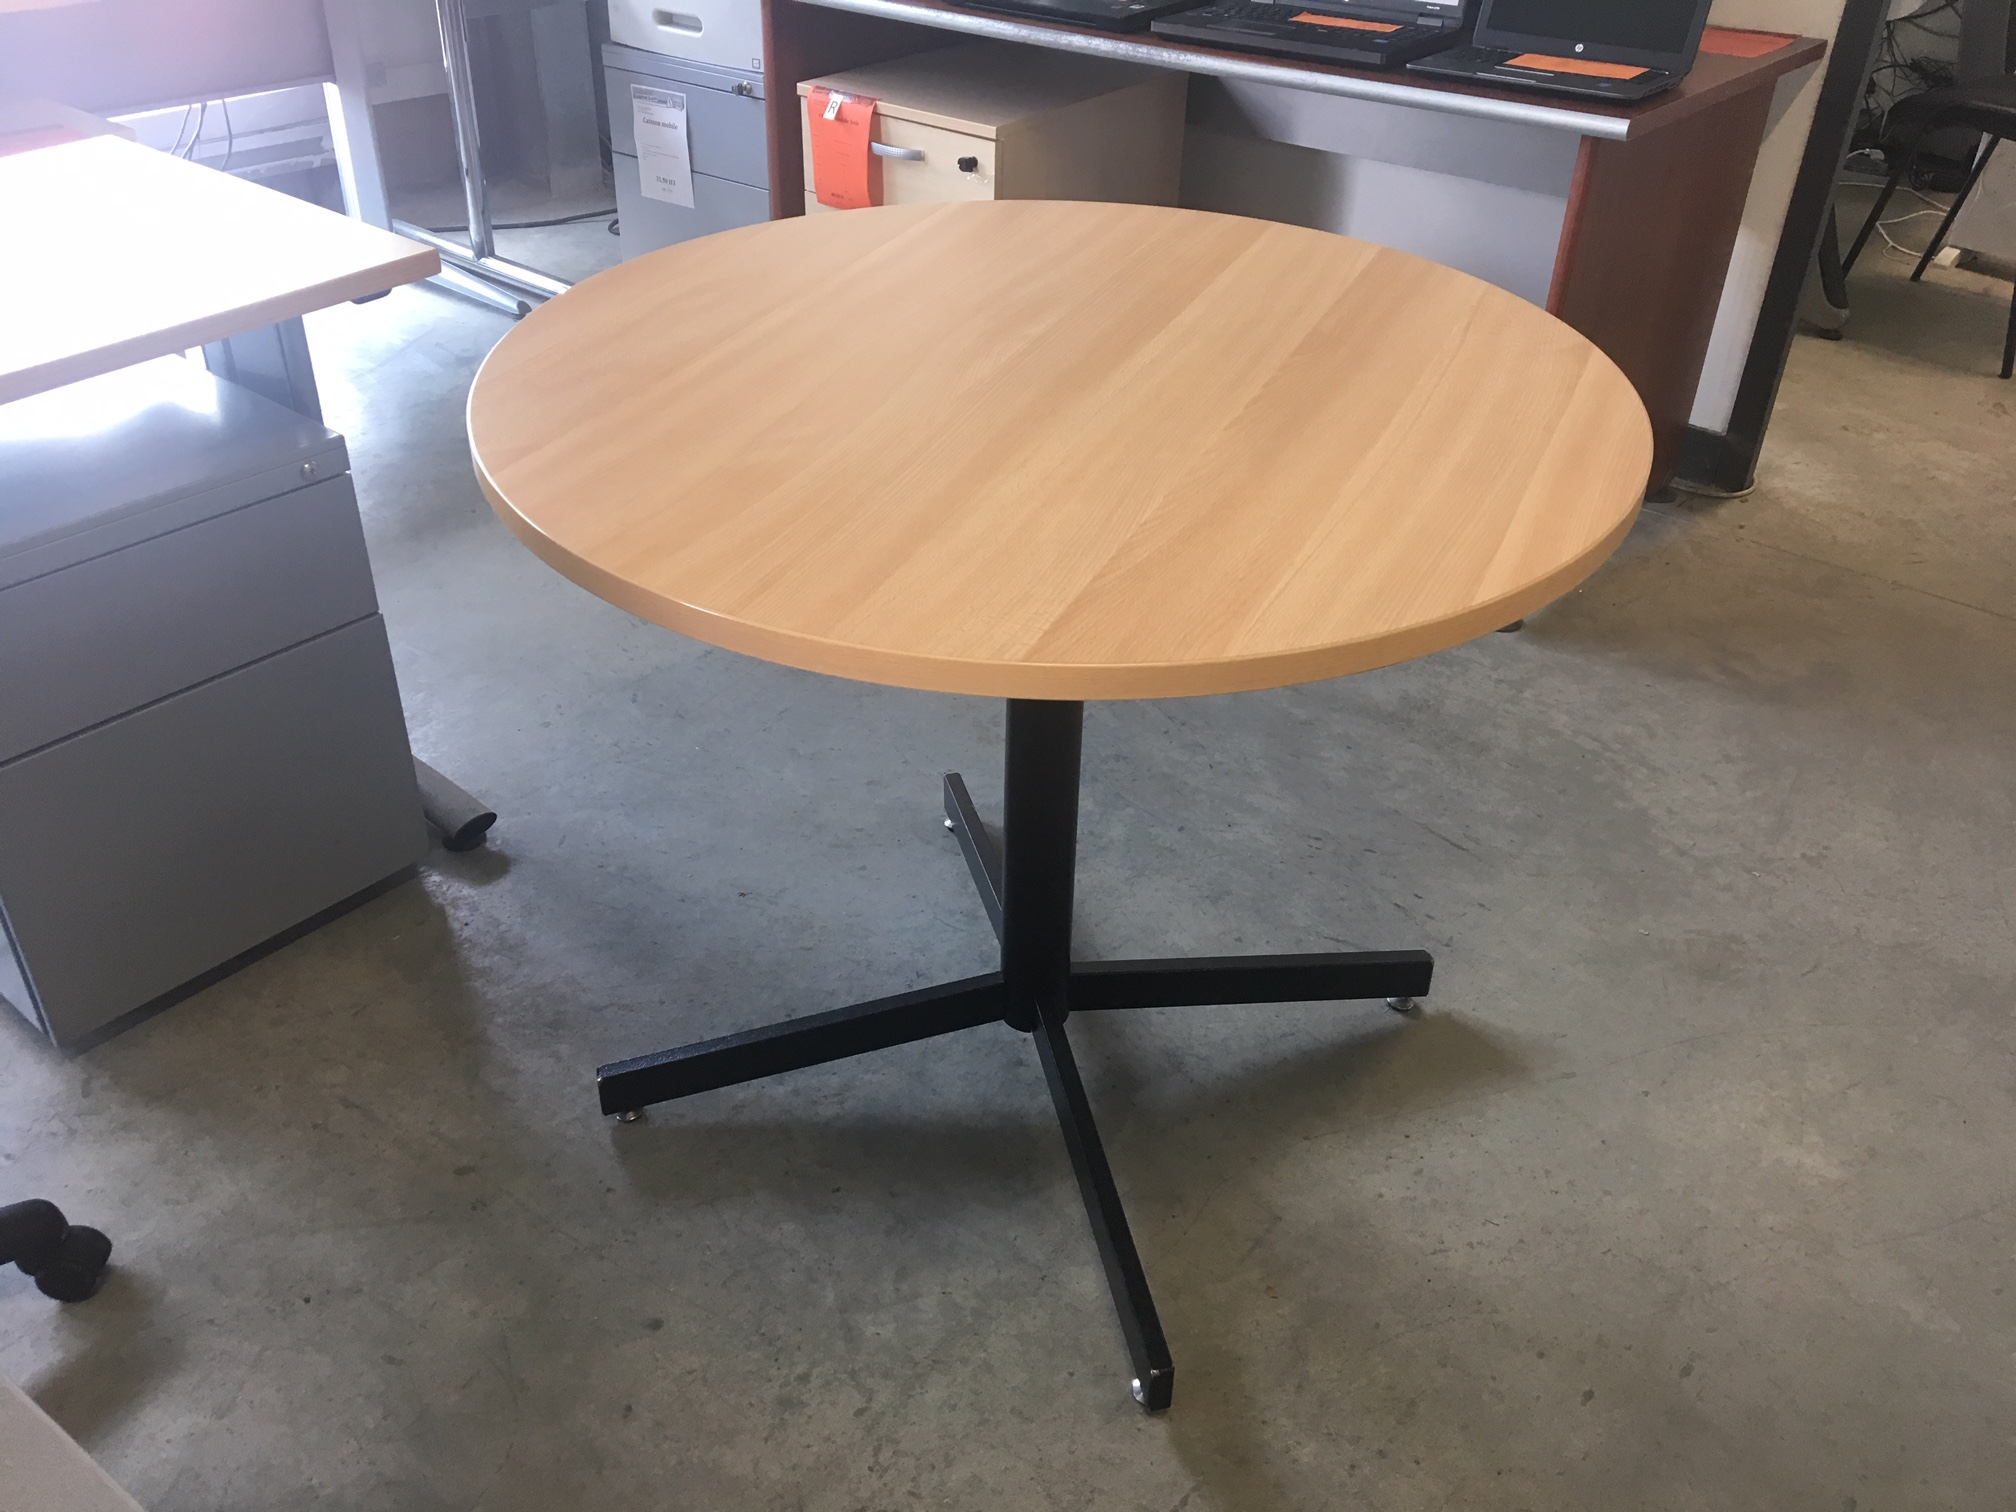 Table ronde diamètre 90cm